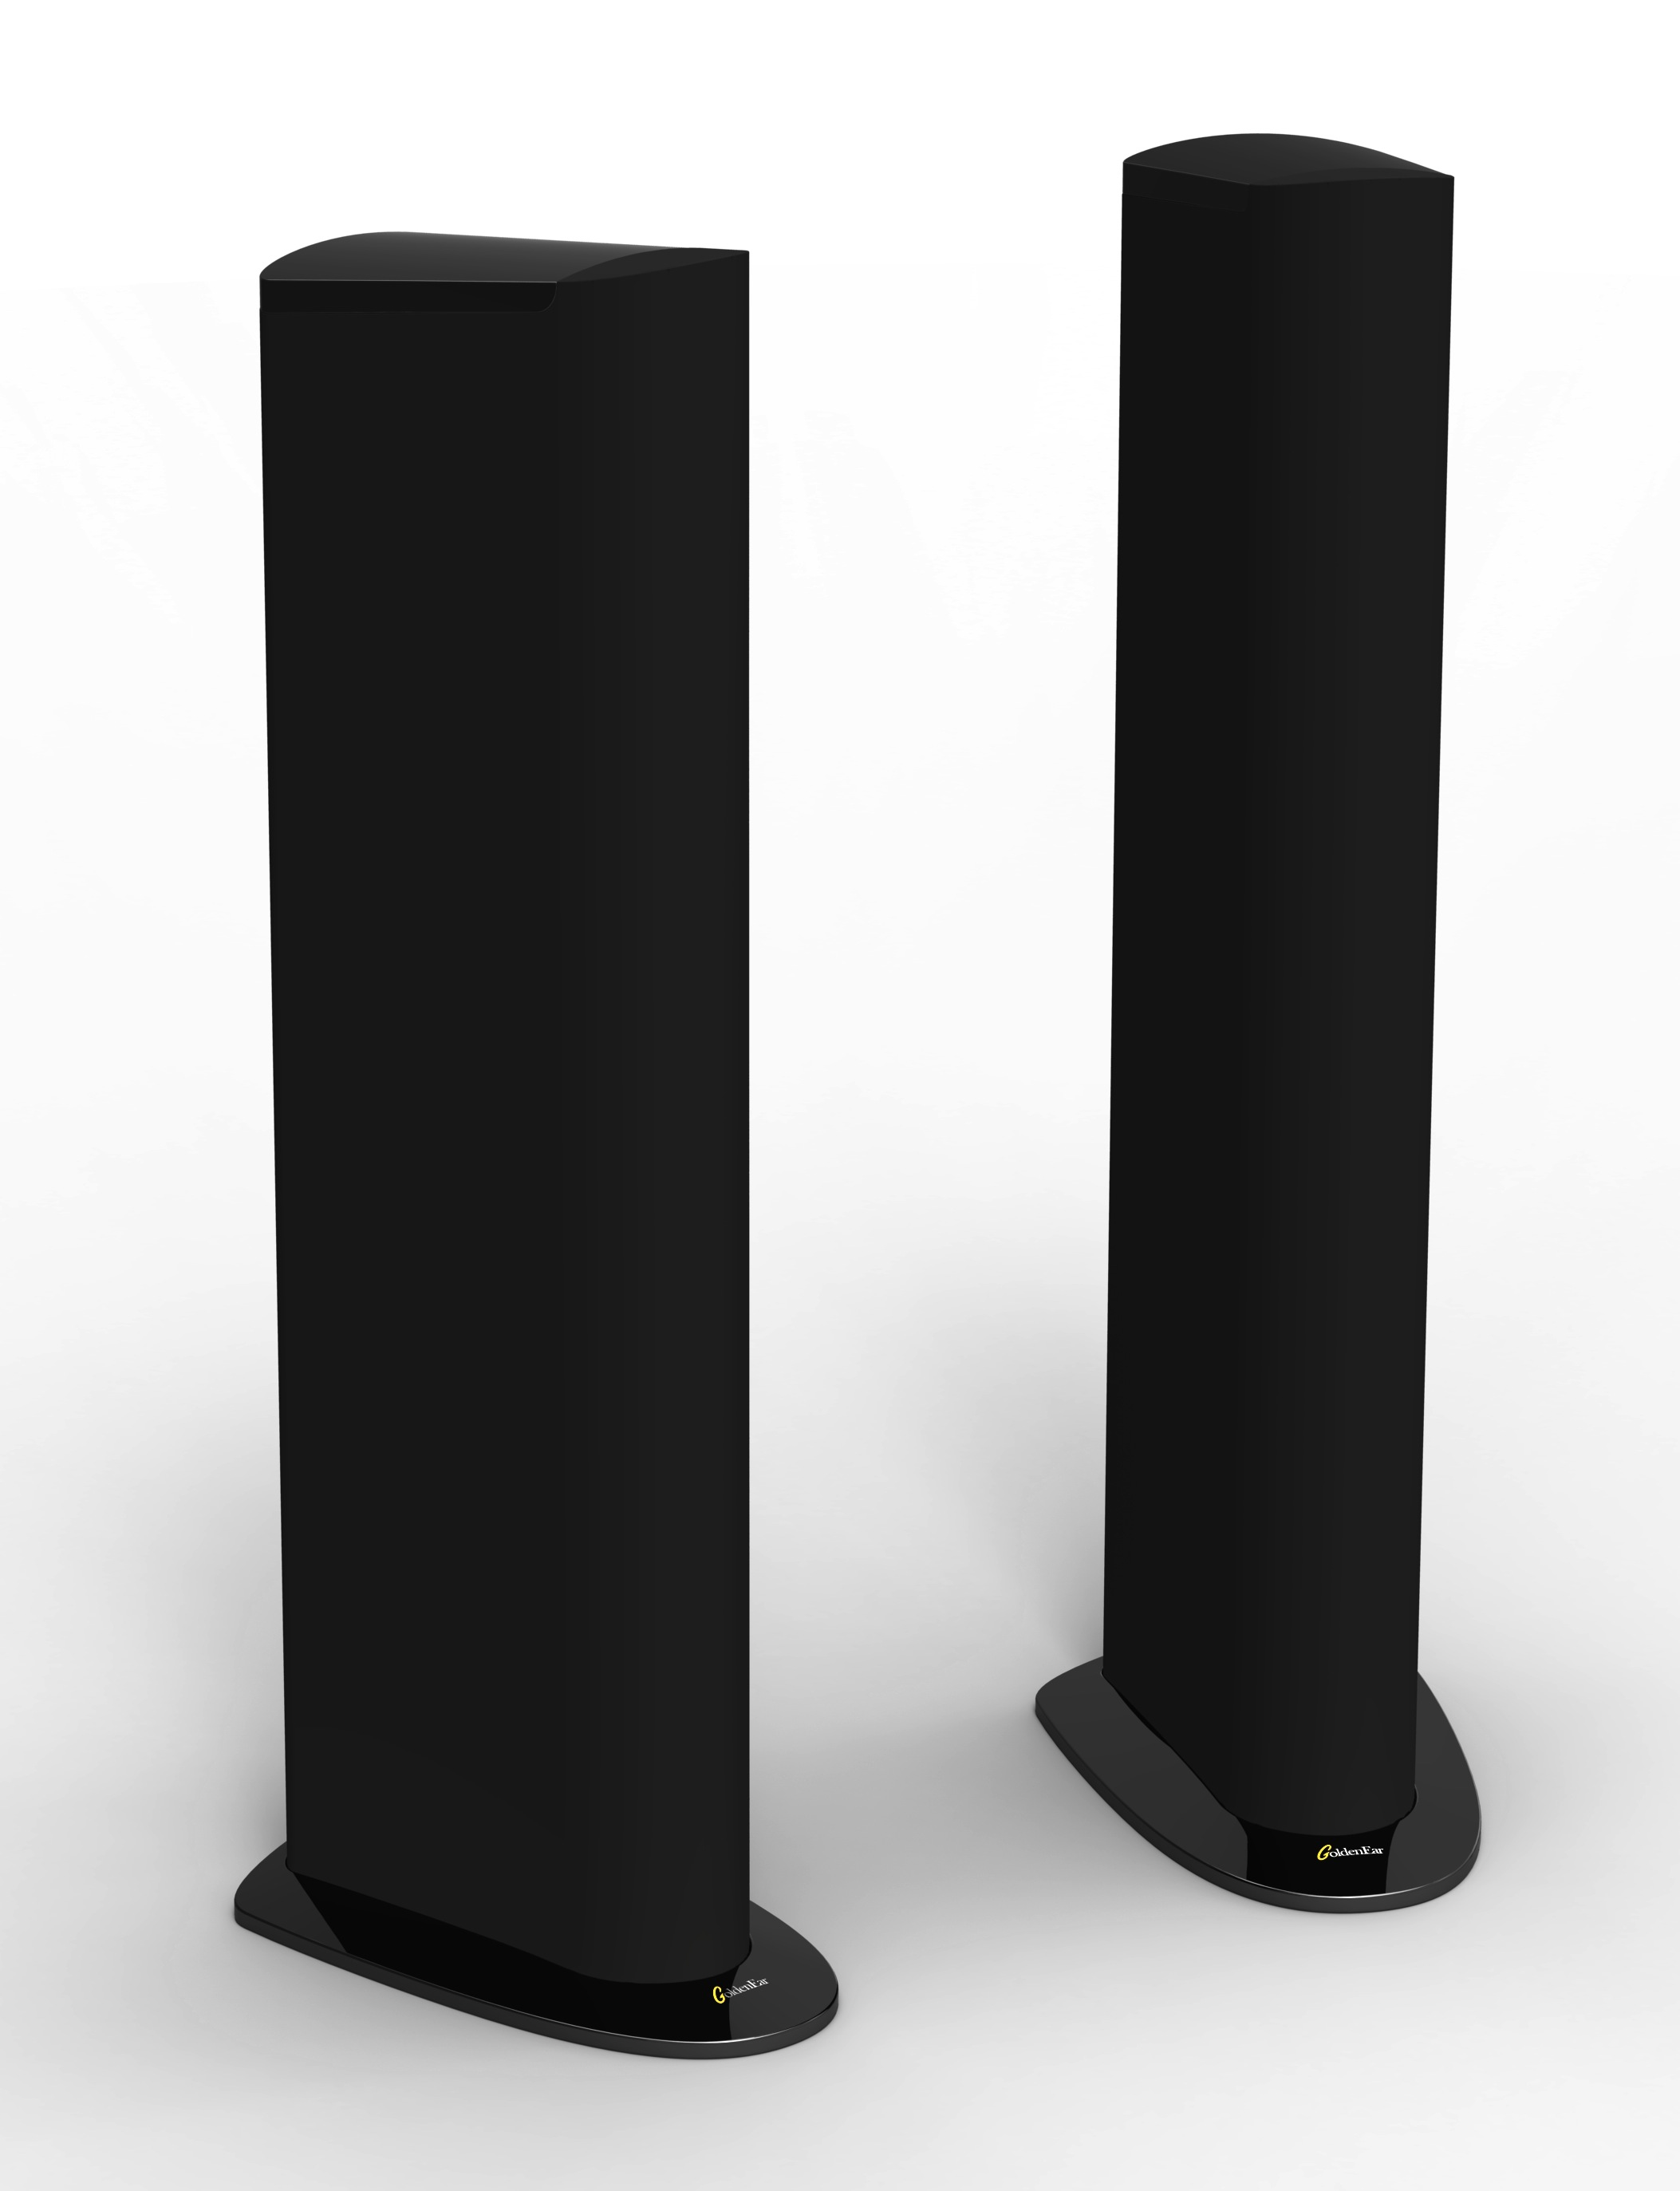 Goldenear Technology Triton Two Floorstanding Speaker